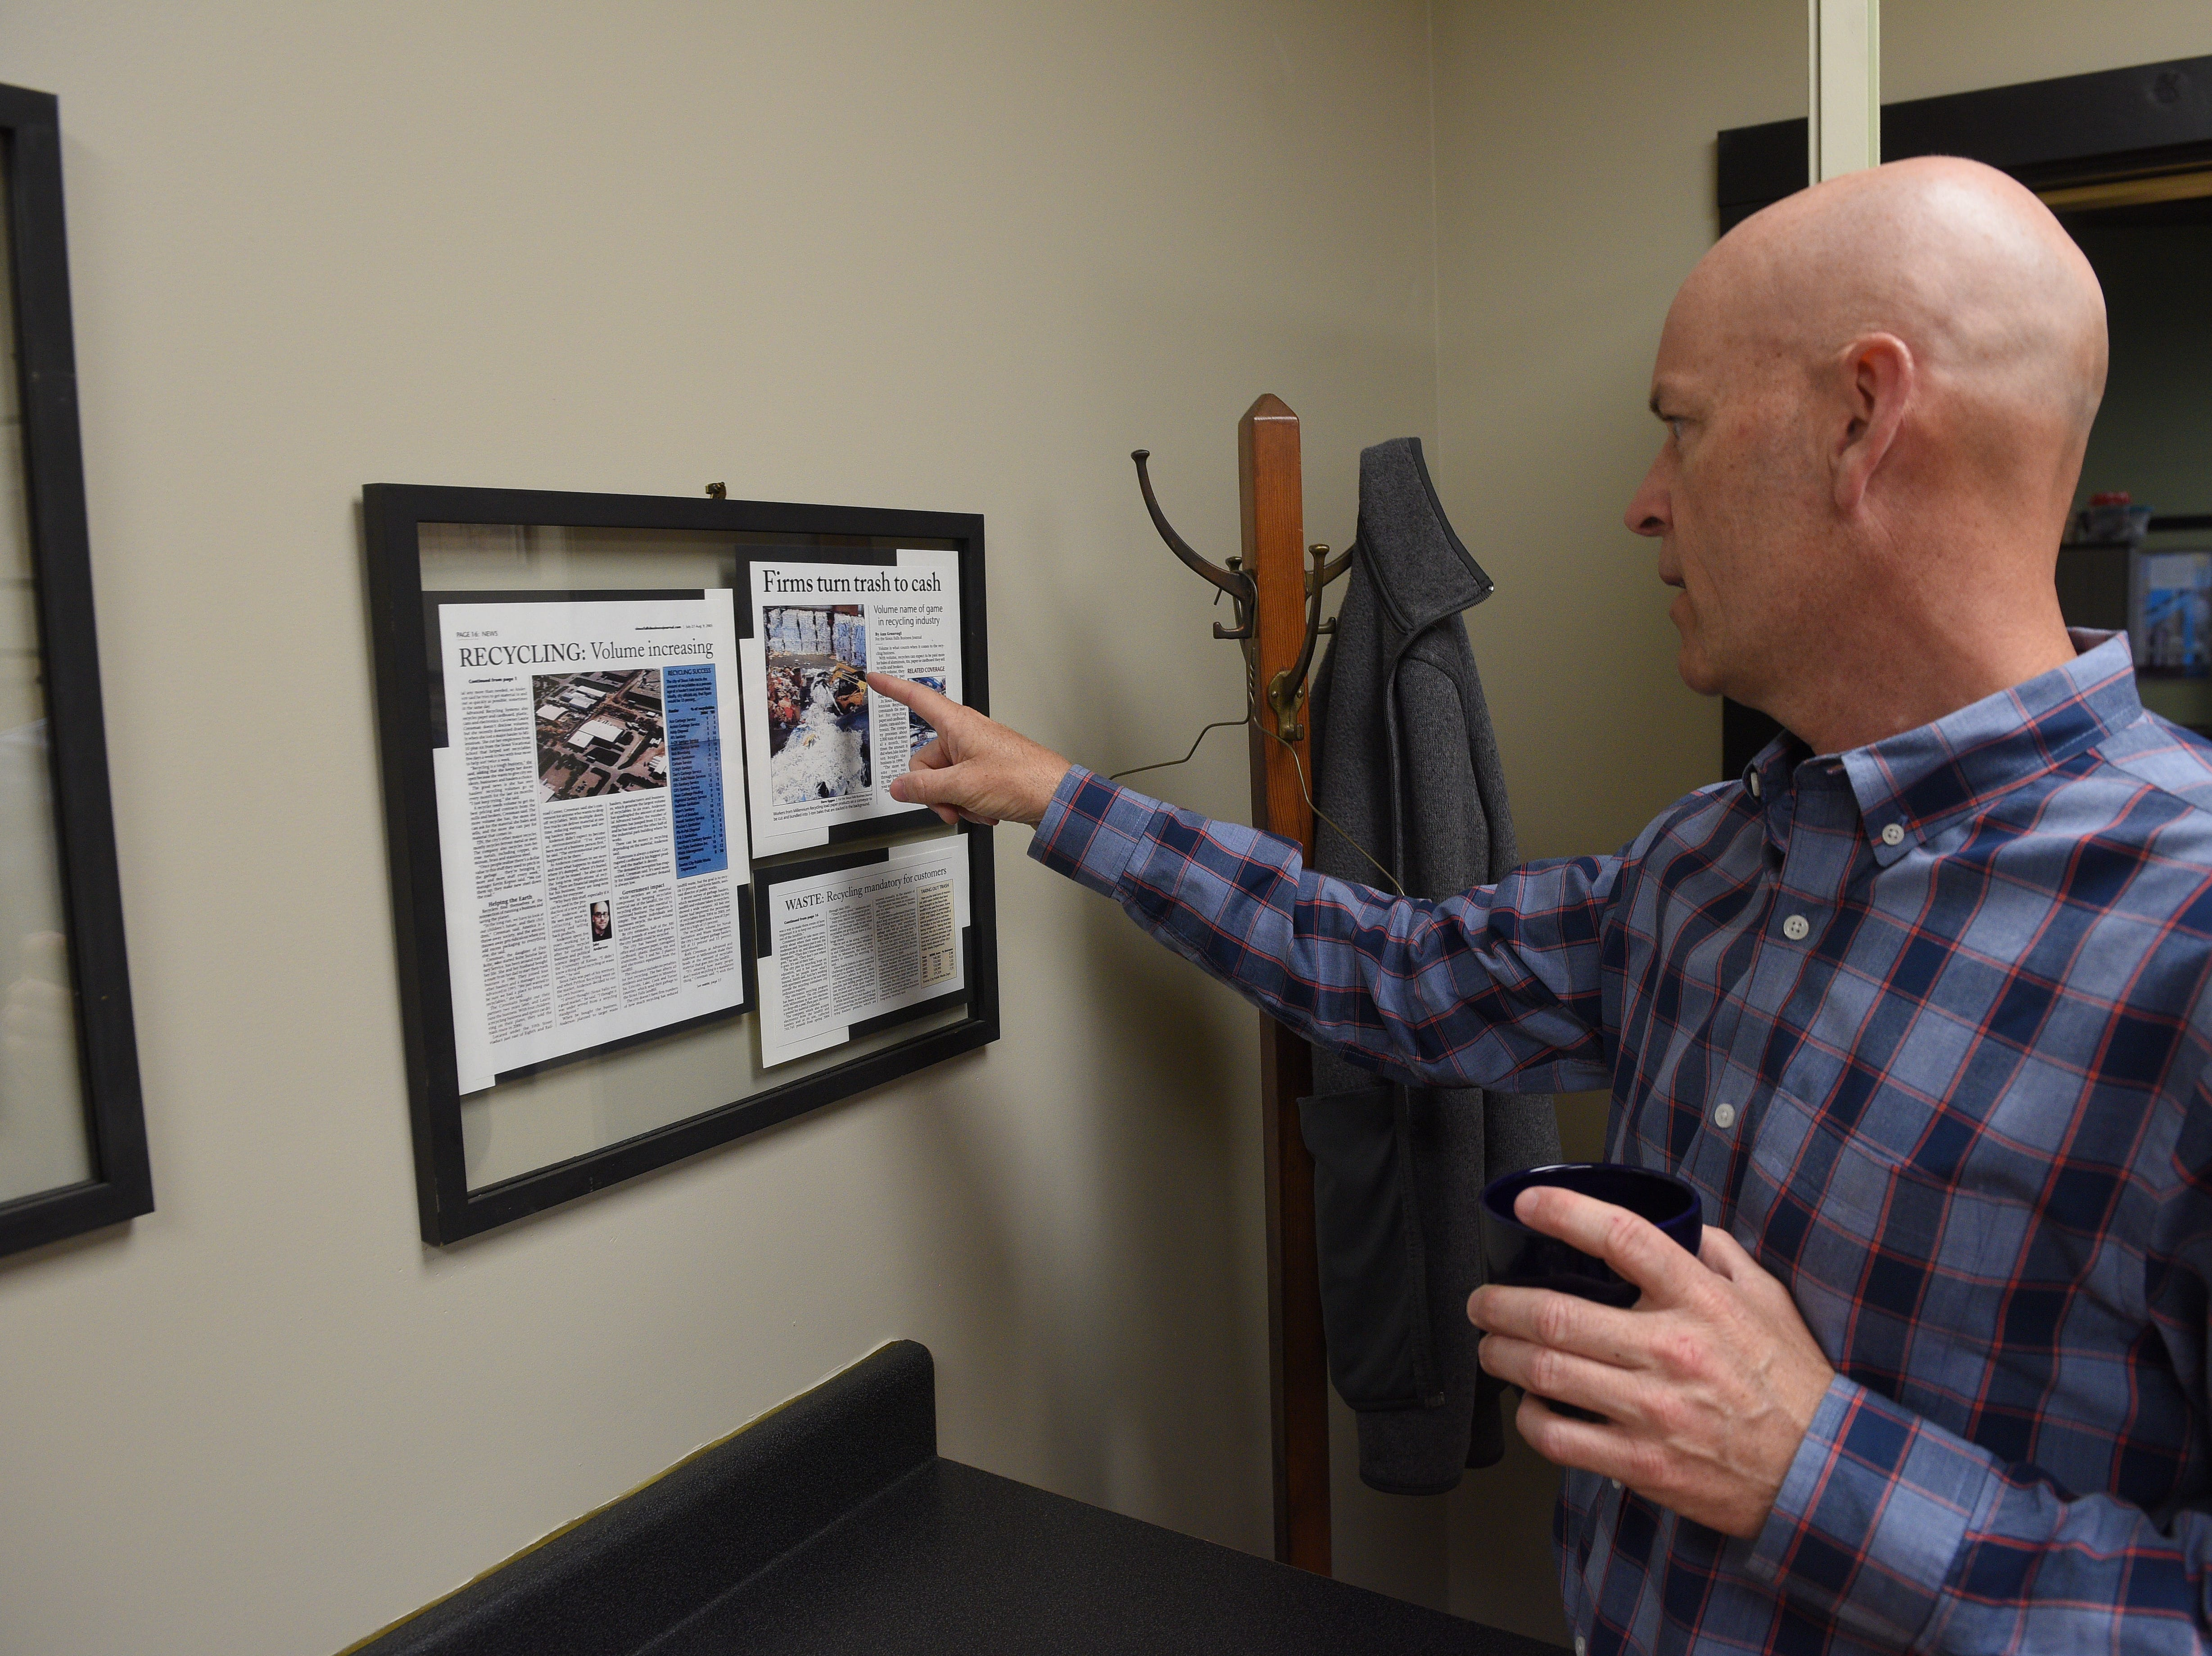 Millennium Recycling Founder and CEO Jake Anderson looks at old newspaper clippings about his business' earlier days. Millennium is celebrating its 20th anniversary this year.